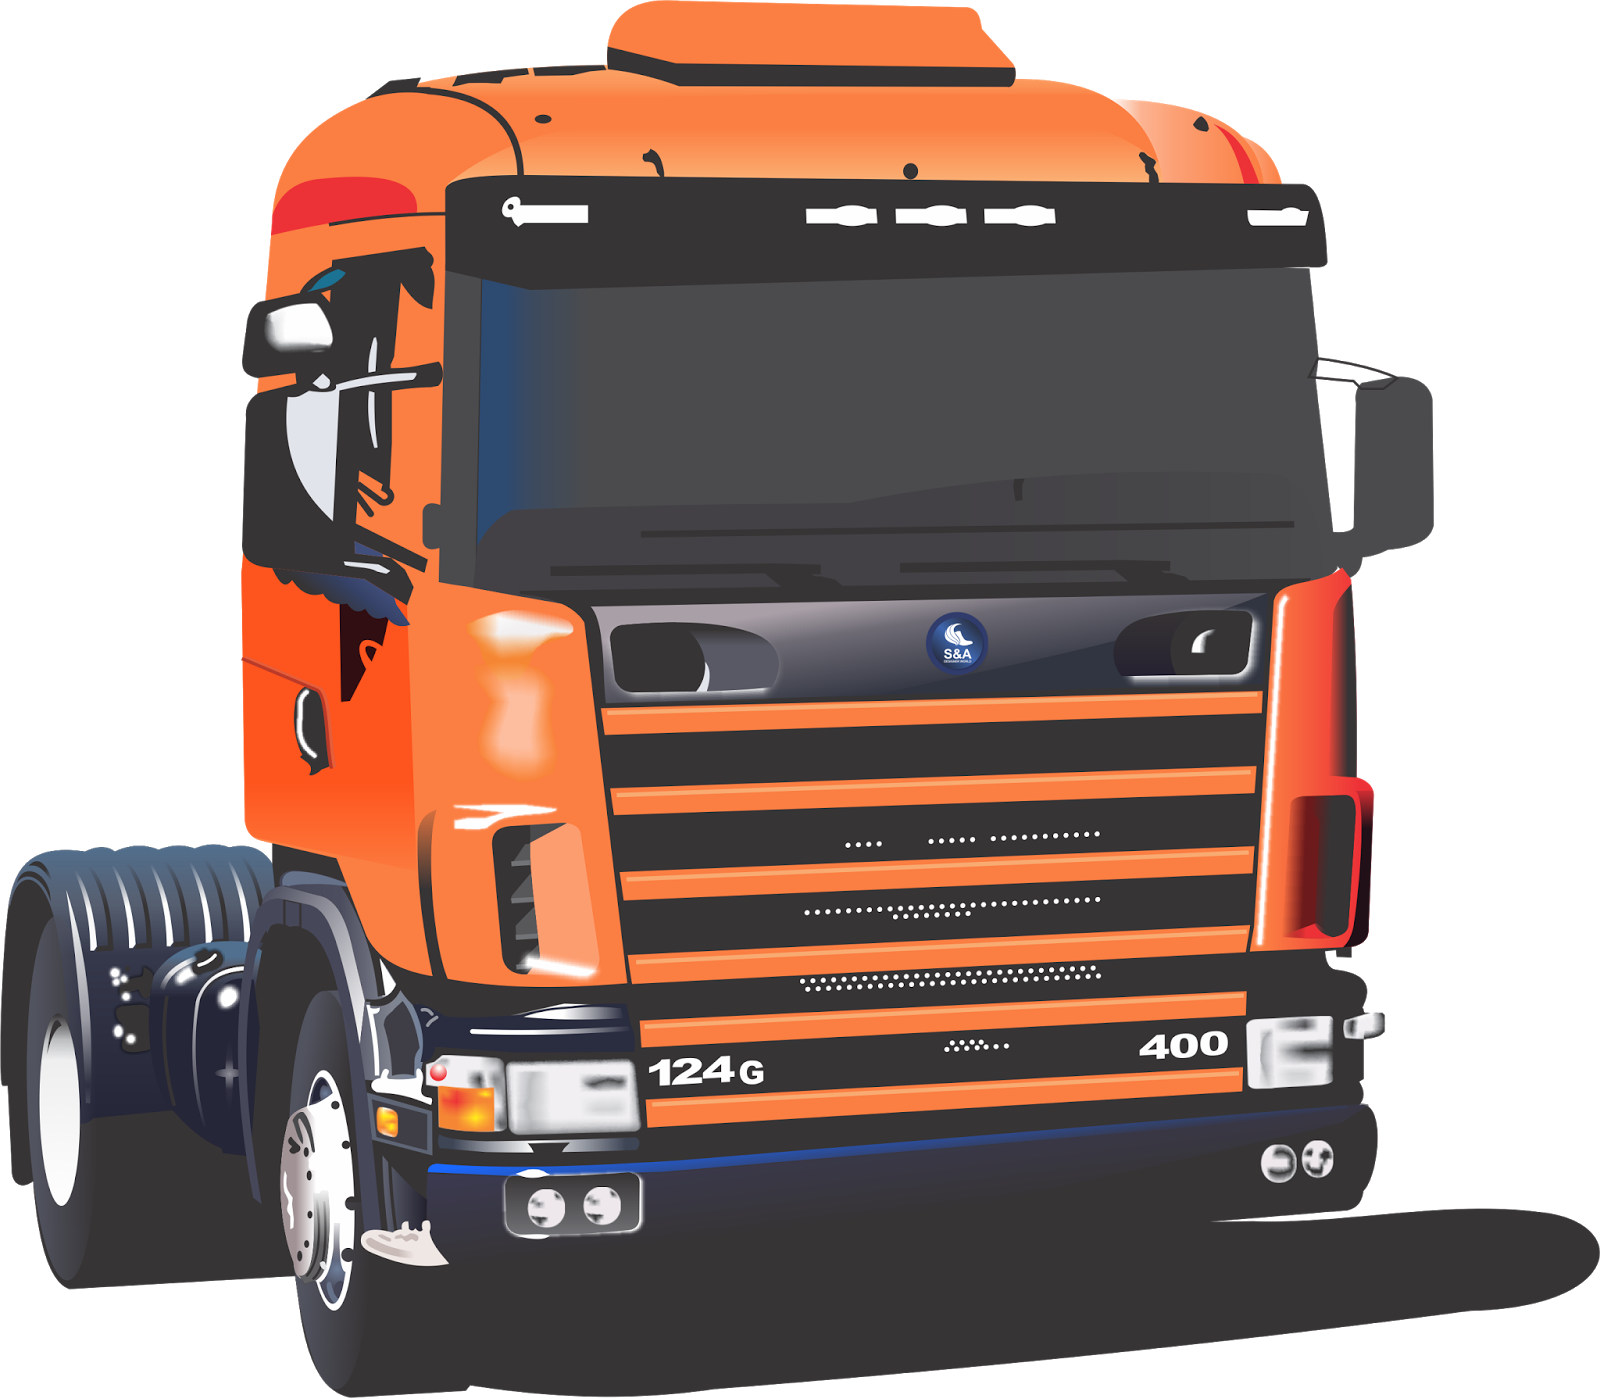 Free Vector About Car amp Truck Graphics